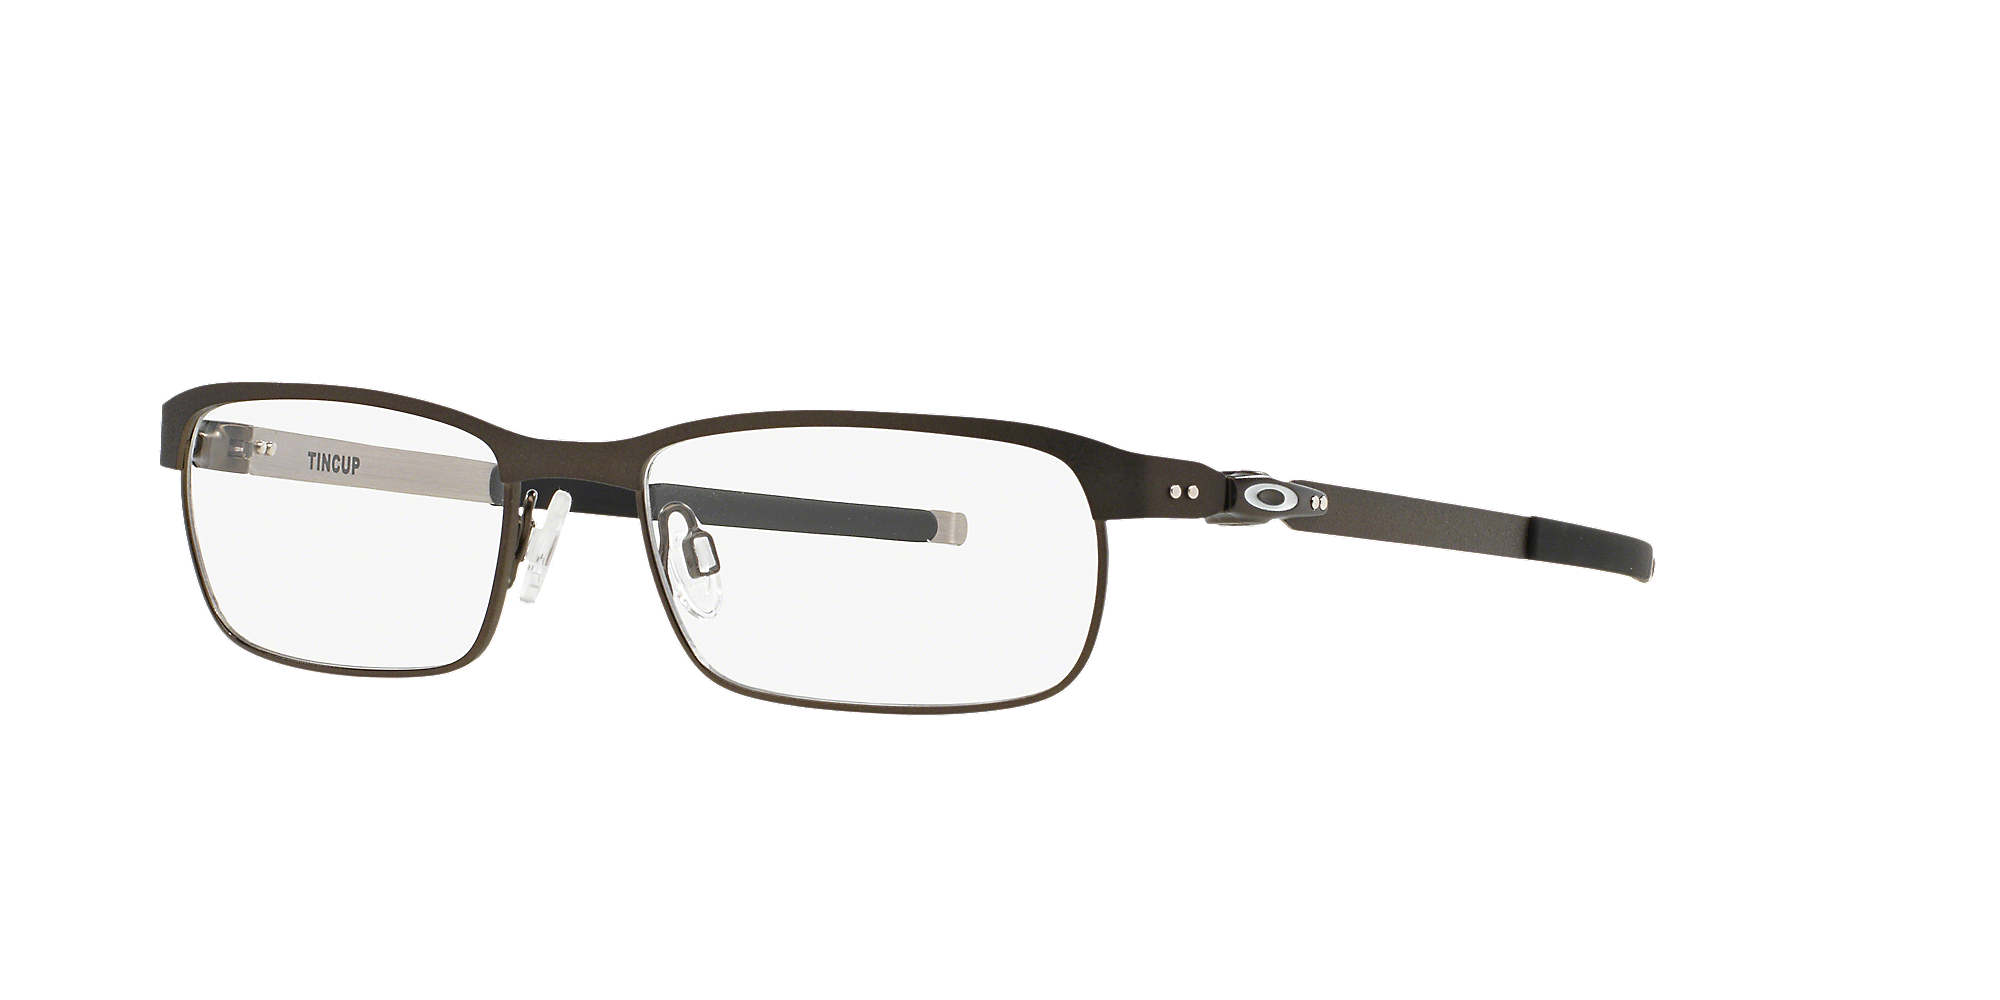 oakley rimless prescription glasses mbxb  OAKLEY OX3184 TINCUP Frames